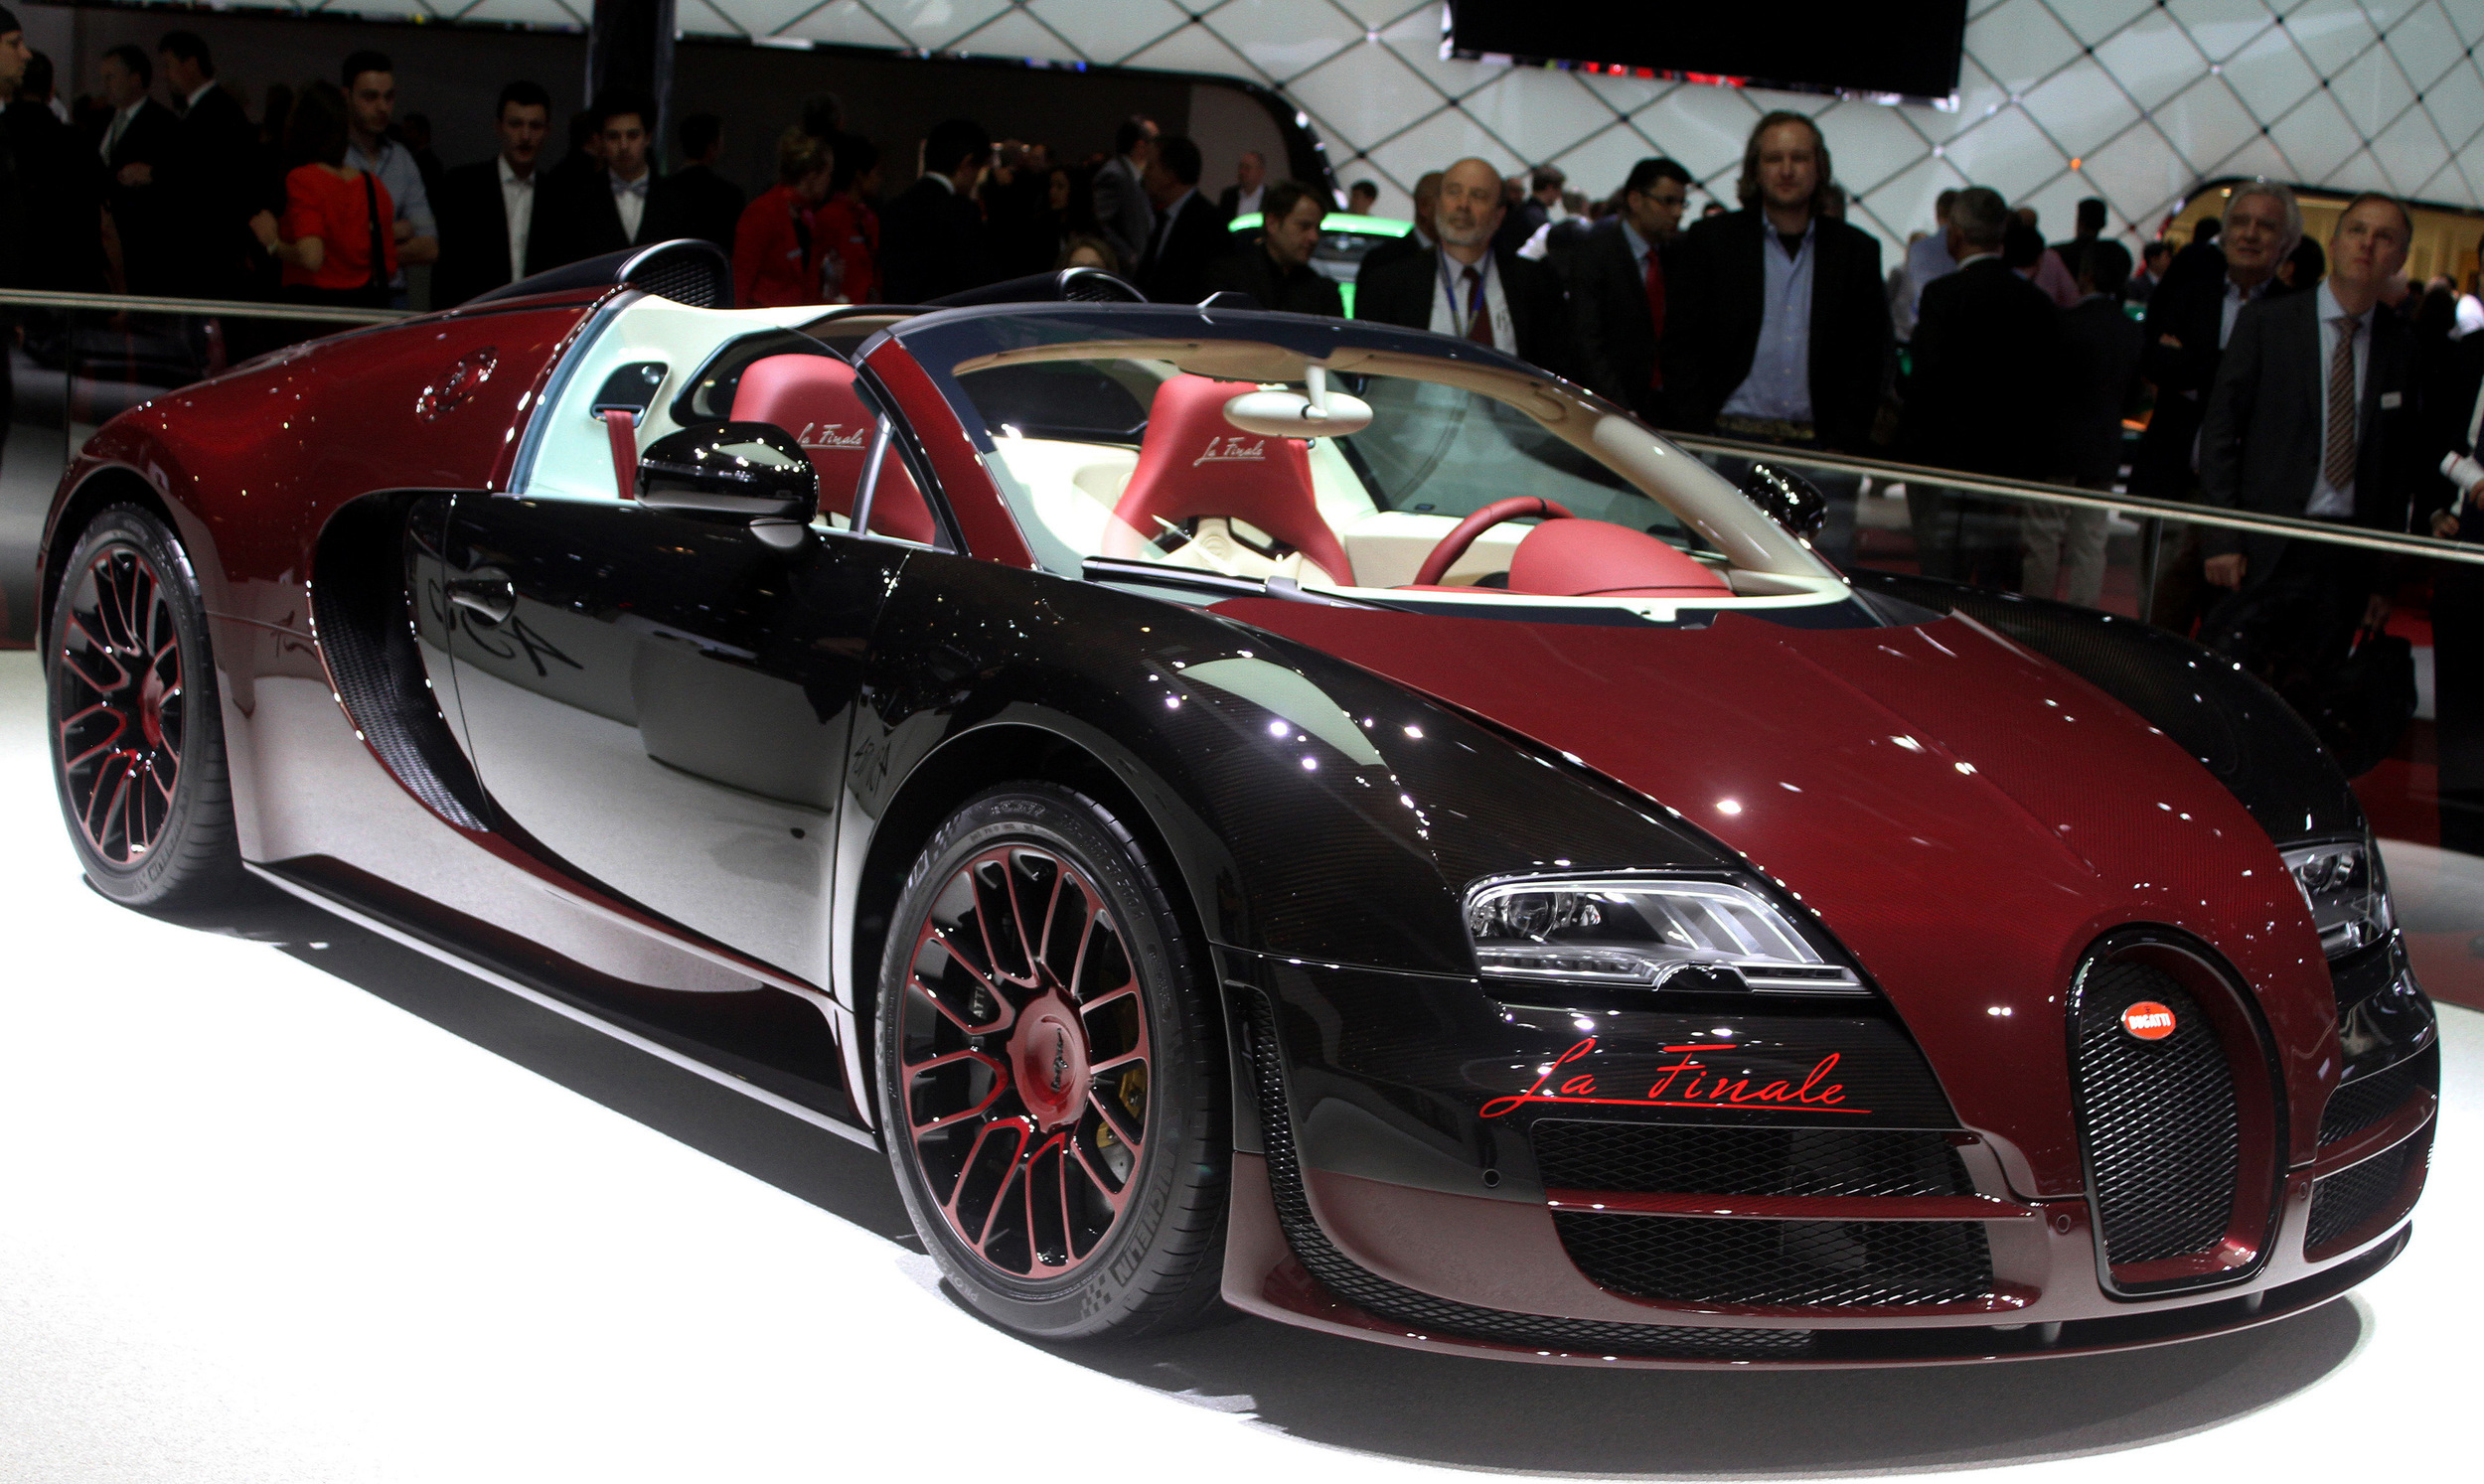 bugatti veyron grand sport vitesse la finale geneva 2015 autoblog. Black Bedroom Furniture Sets. Home Design Ideas